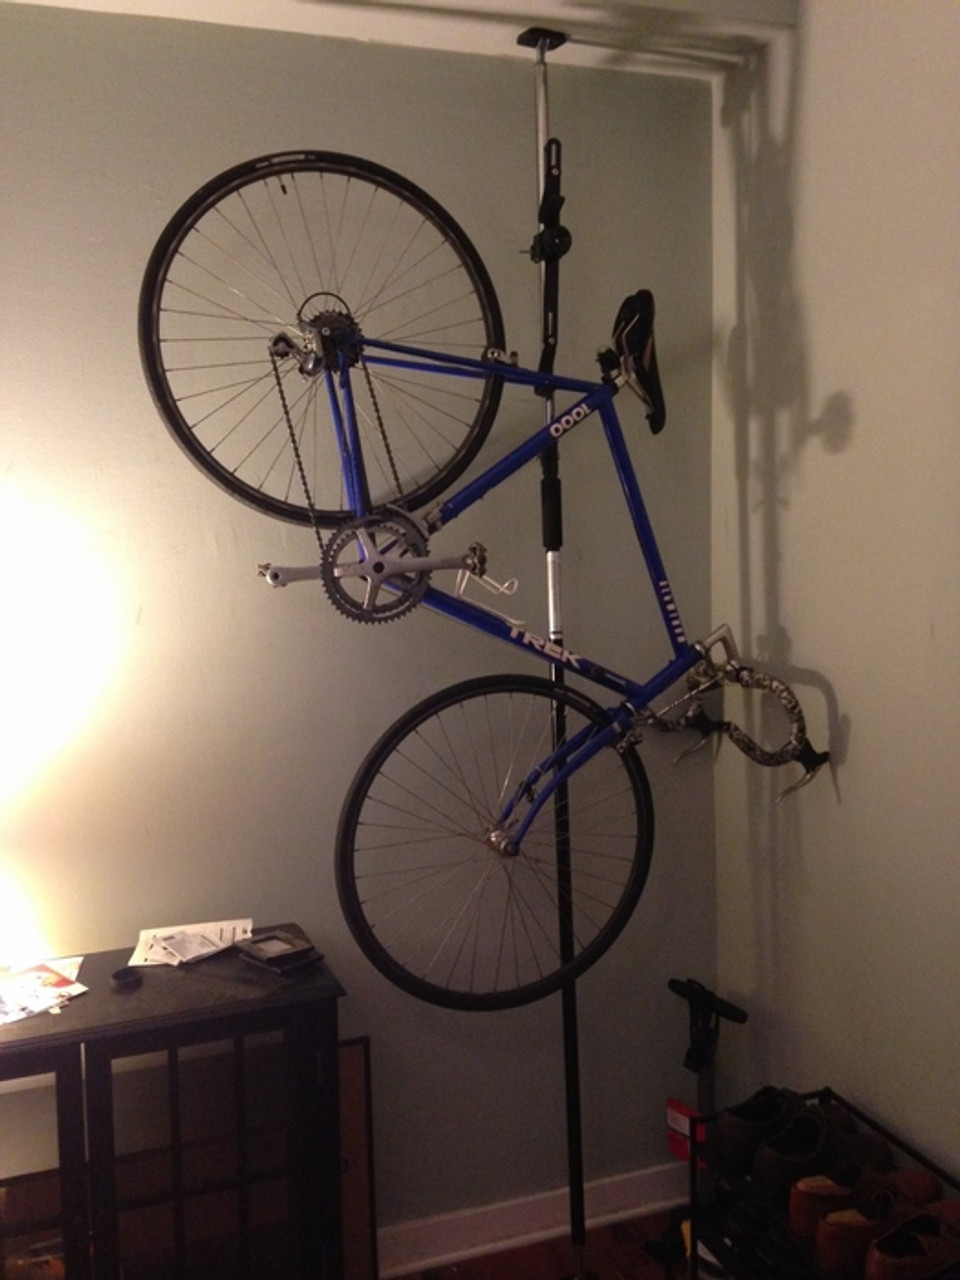 Bike Storage Rack For Apartment Pressure Mount Make Your Own Beautiful  HD Wallpapers, Images Over 1000+ [ralydesign.ml]